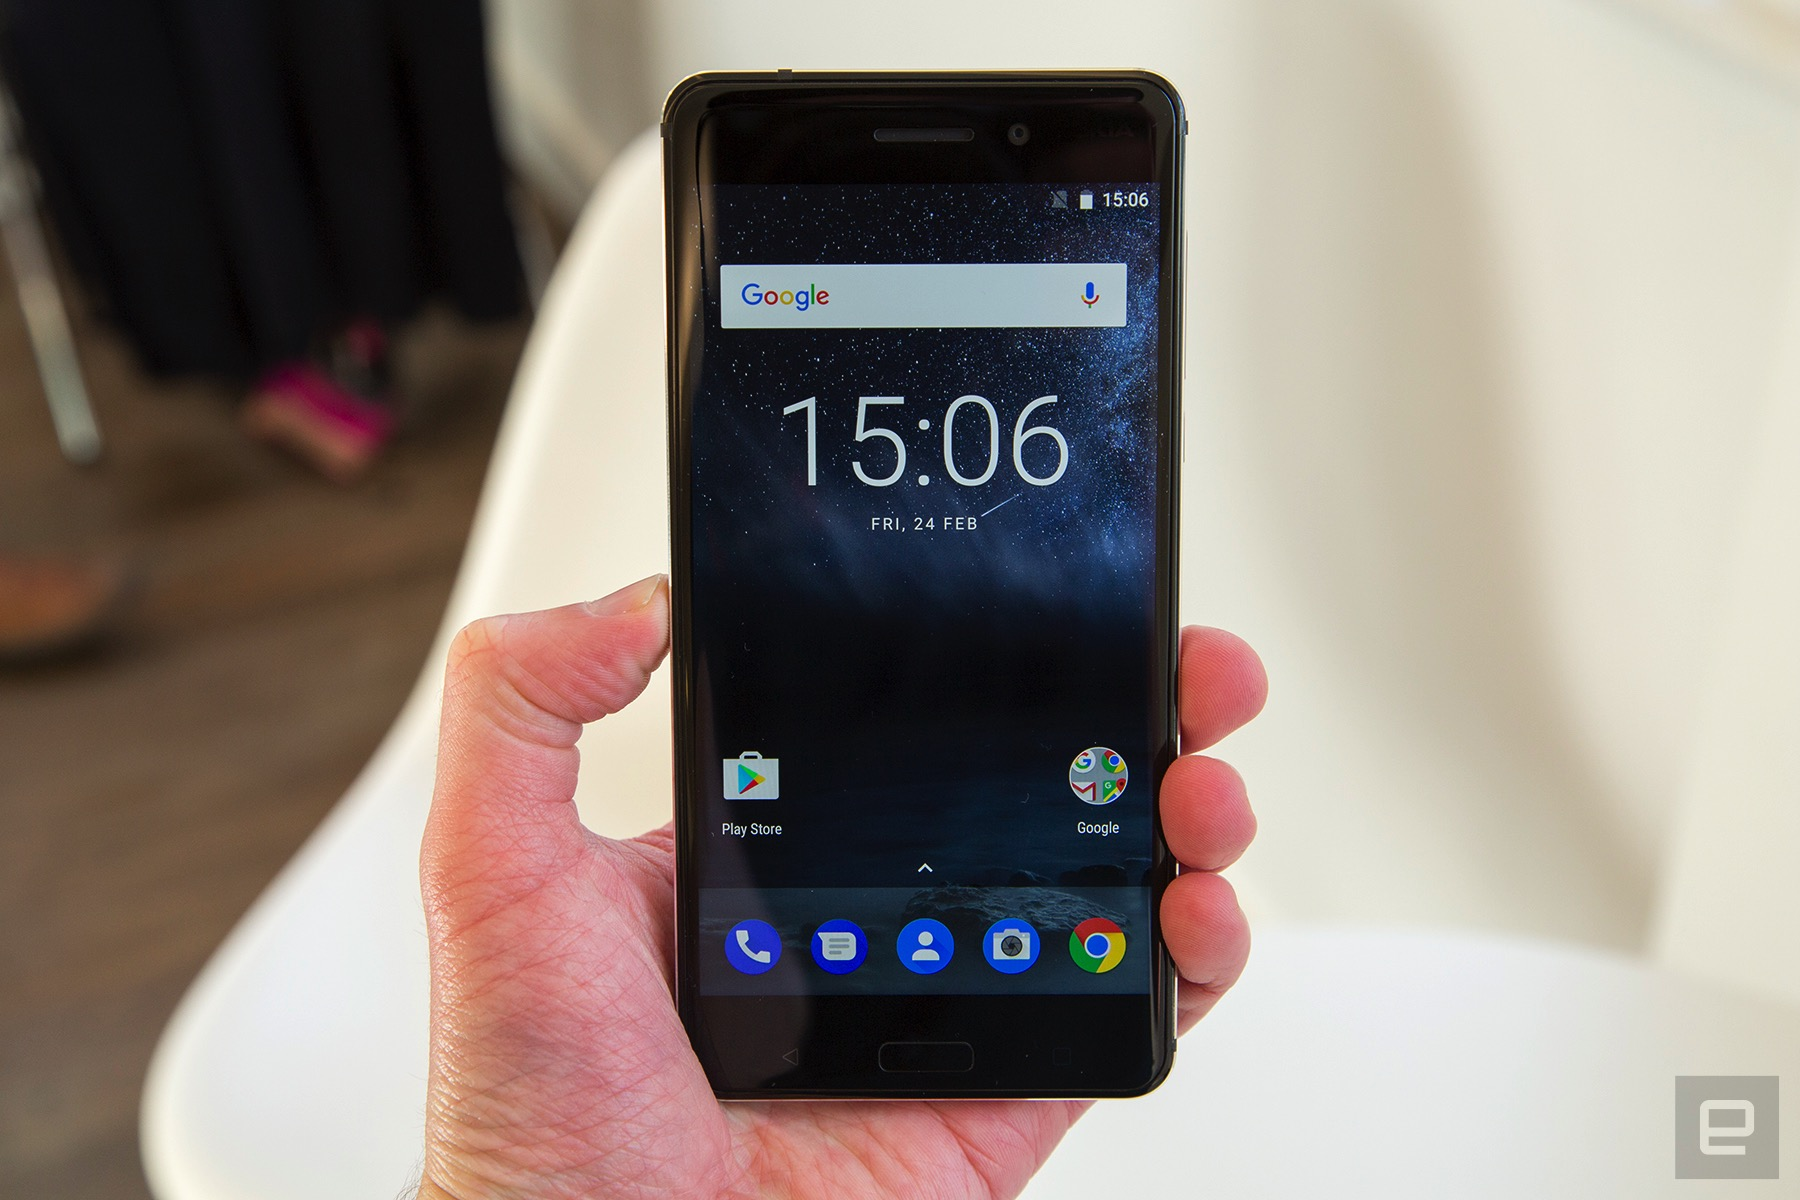 Watch our video of Nokia 9 PureView